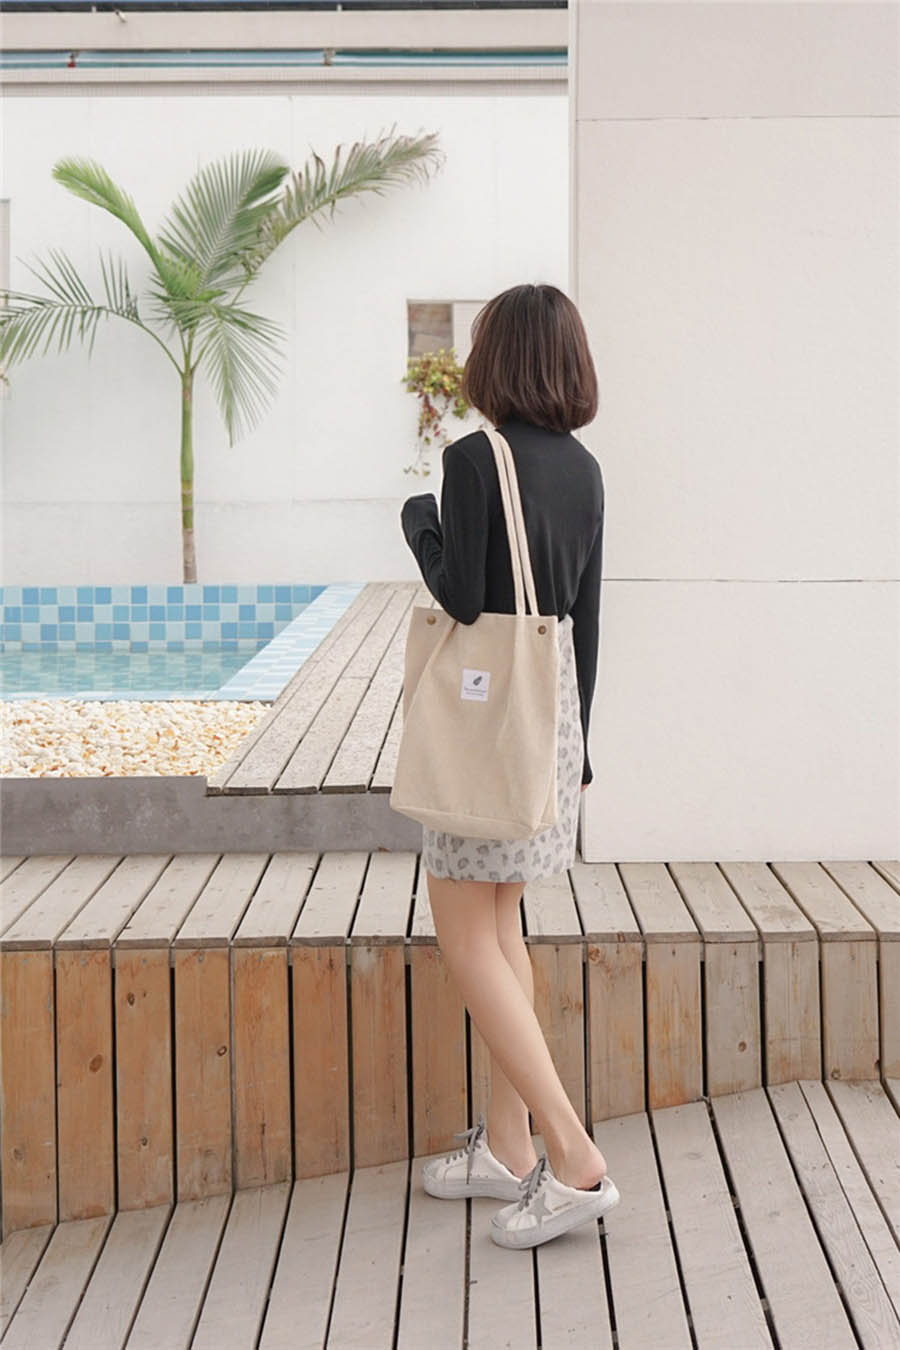 Mara's Dream High Capacity Women Corduroy Tote Ladies Casual Solid Color Shoulder Bag Foldable Reusable Women Shopping Beach Bag 30